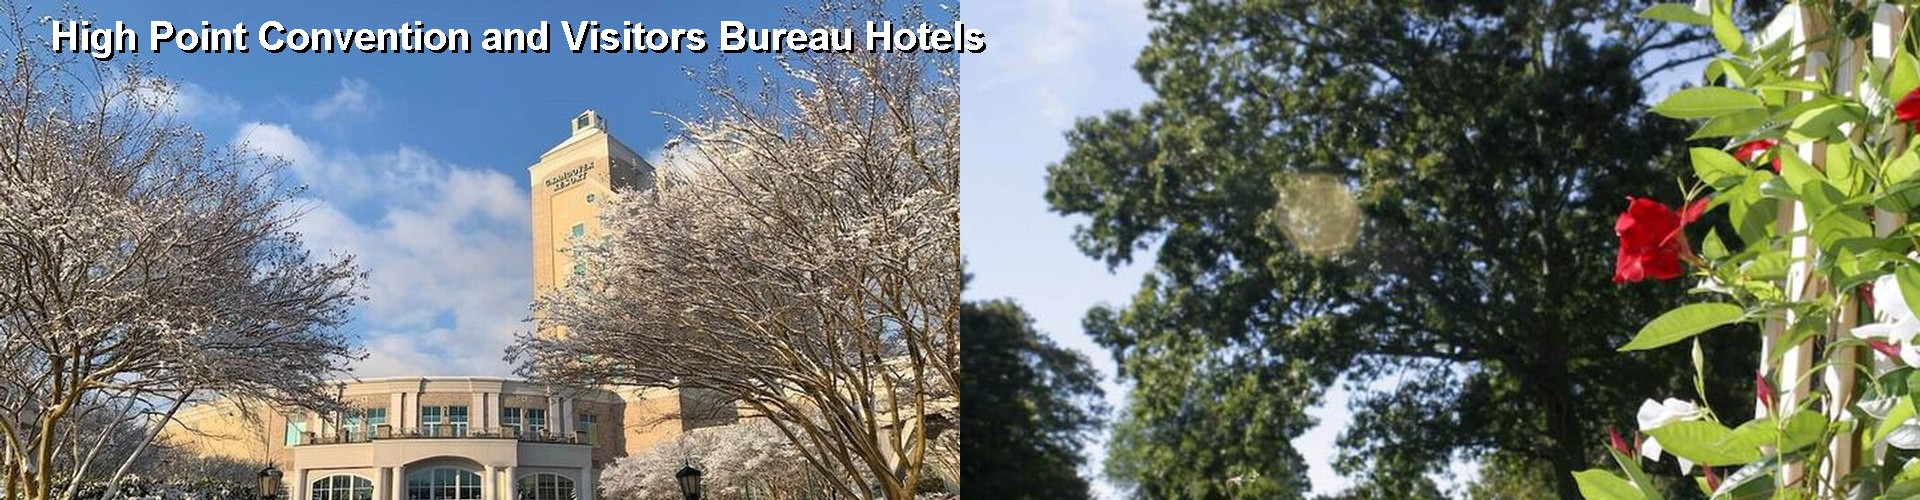 3 Best Hotels near High Point Convention and Visitors Bureau